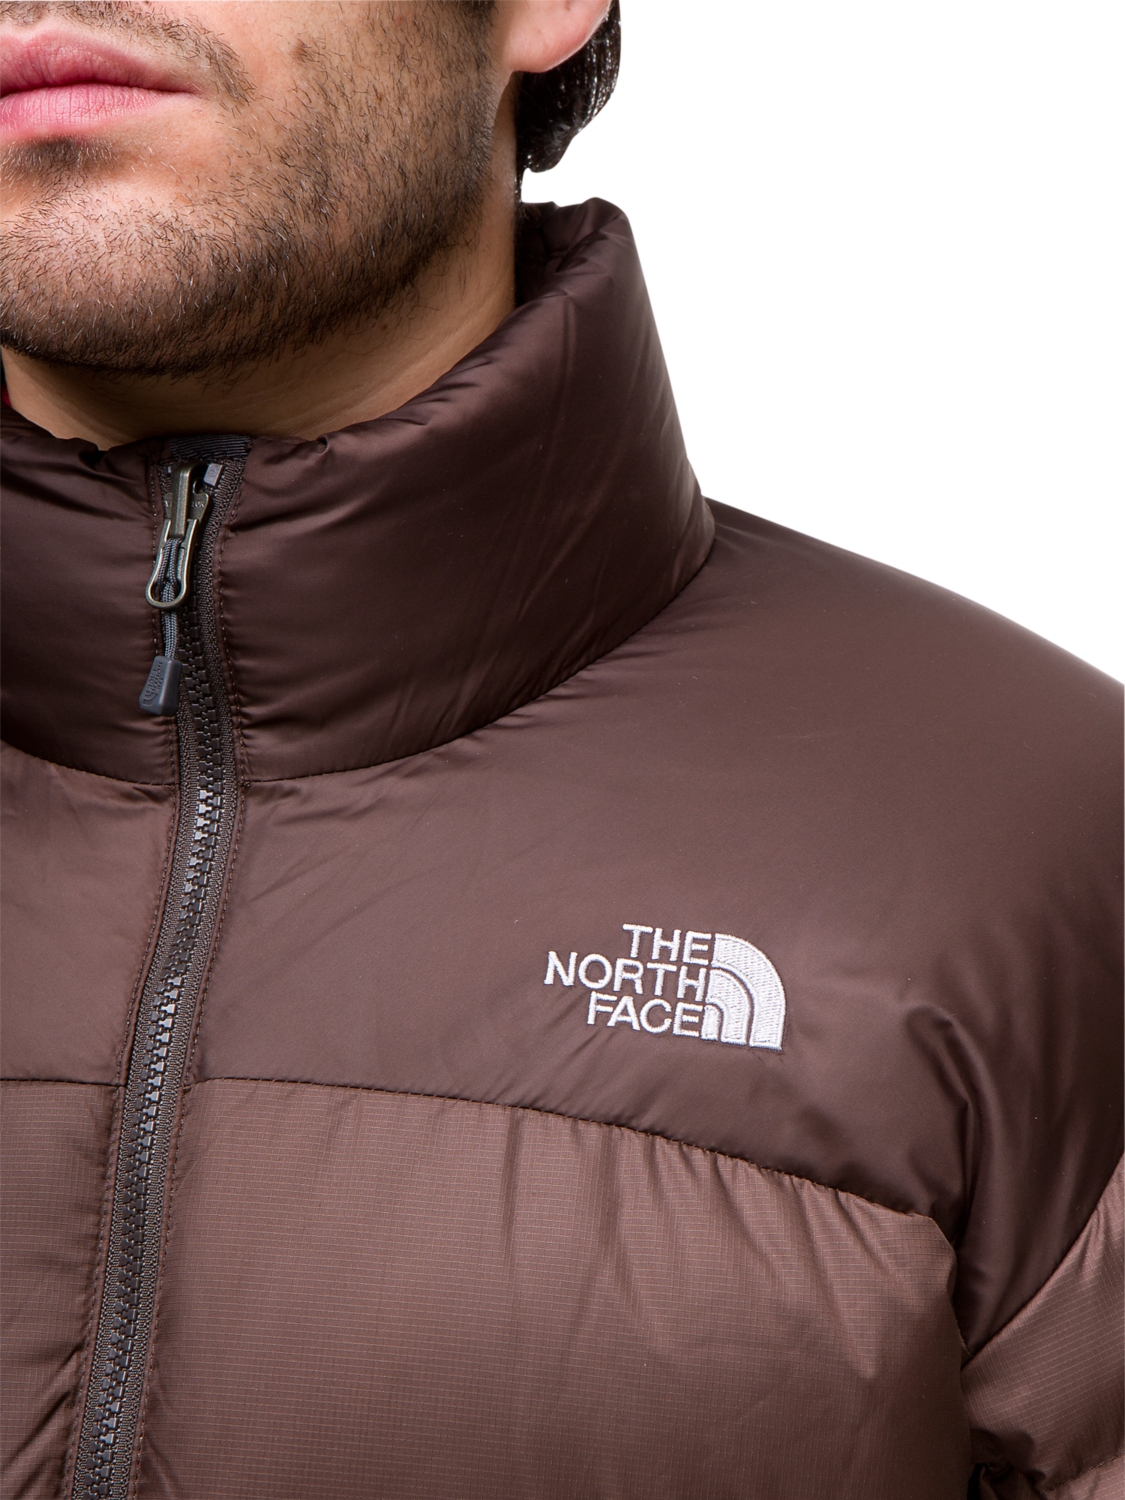 The North Face The North Face Mens Nuptse 2 Jacket Bittersweet Brown For Men Lyst